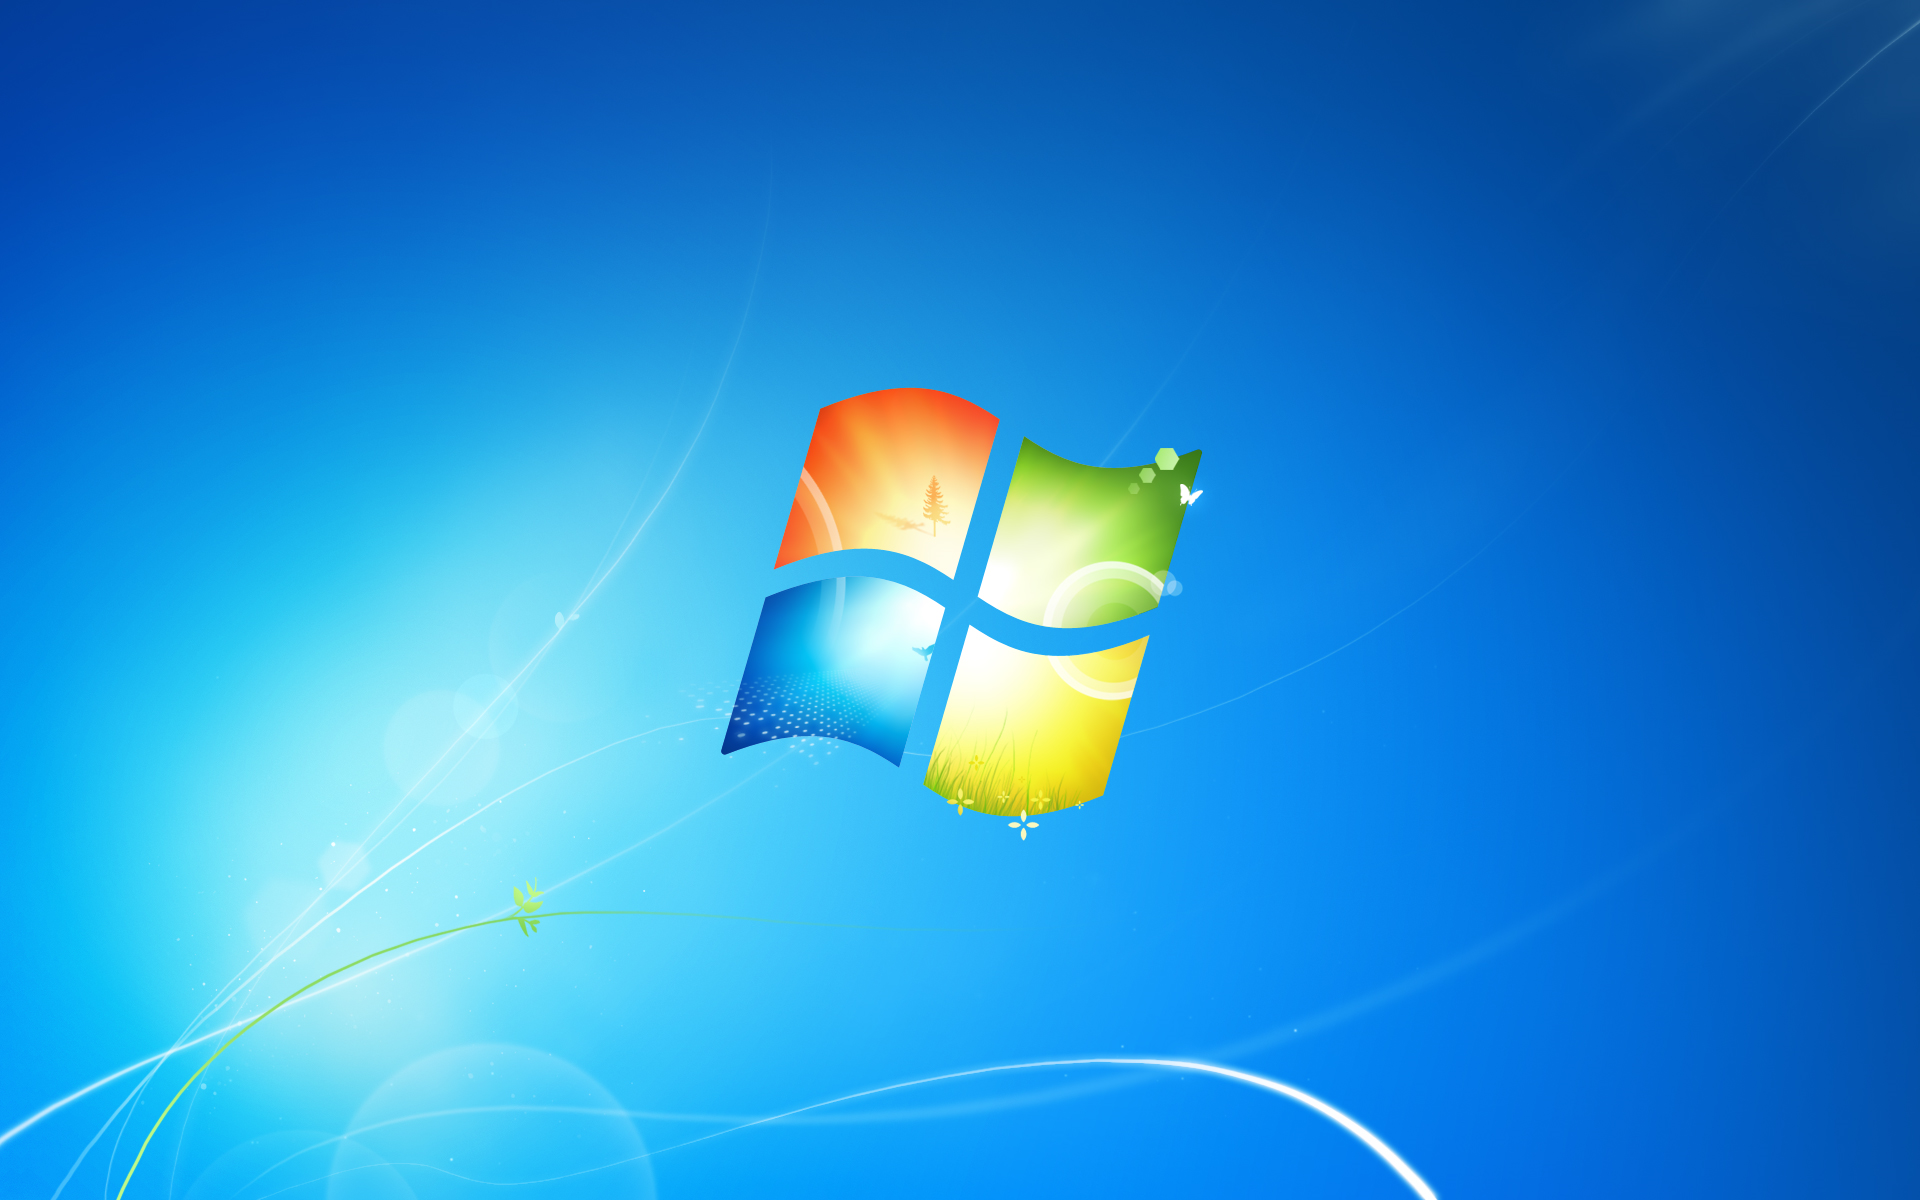 win7-wallpaper-large.png